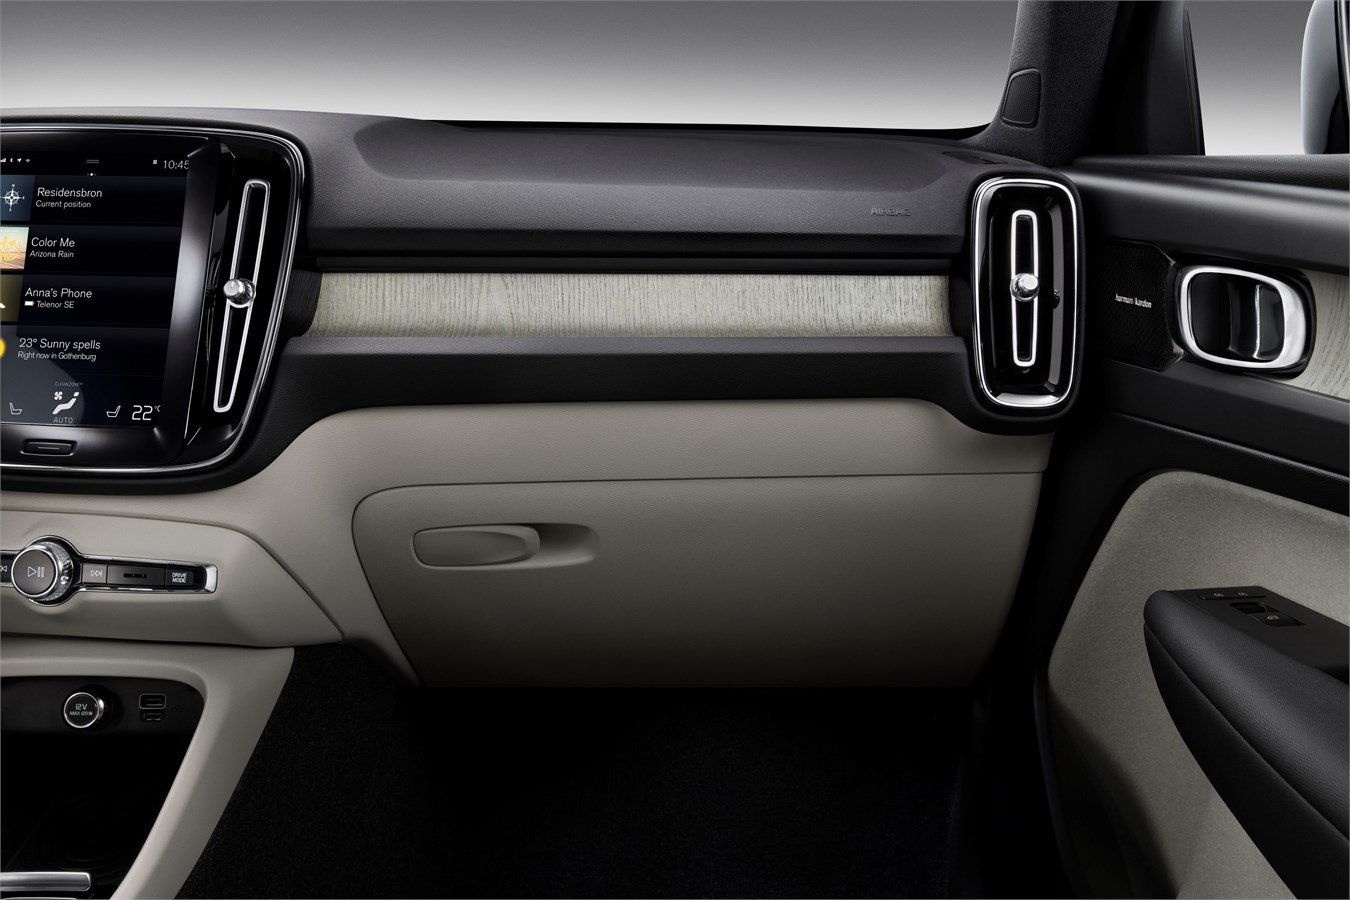 New Volvo XC40 Inscription - interior - Volvo Car Group Global Media Newsroom